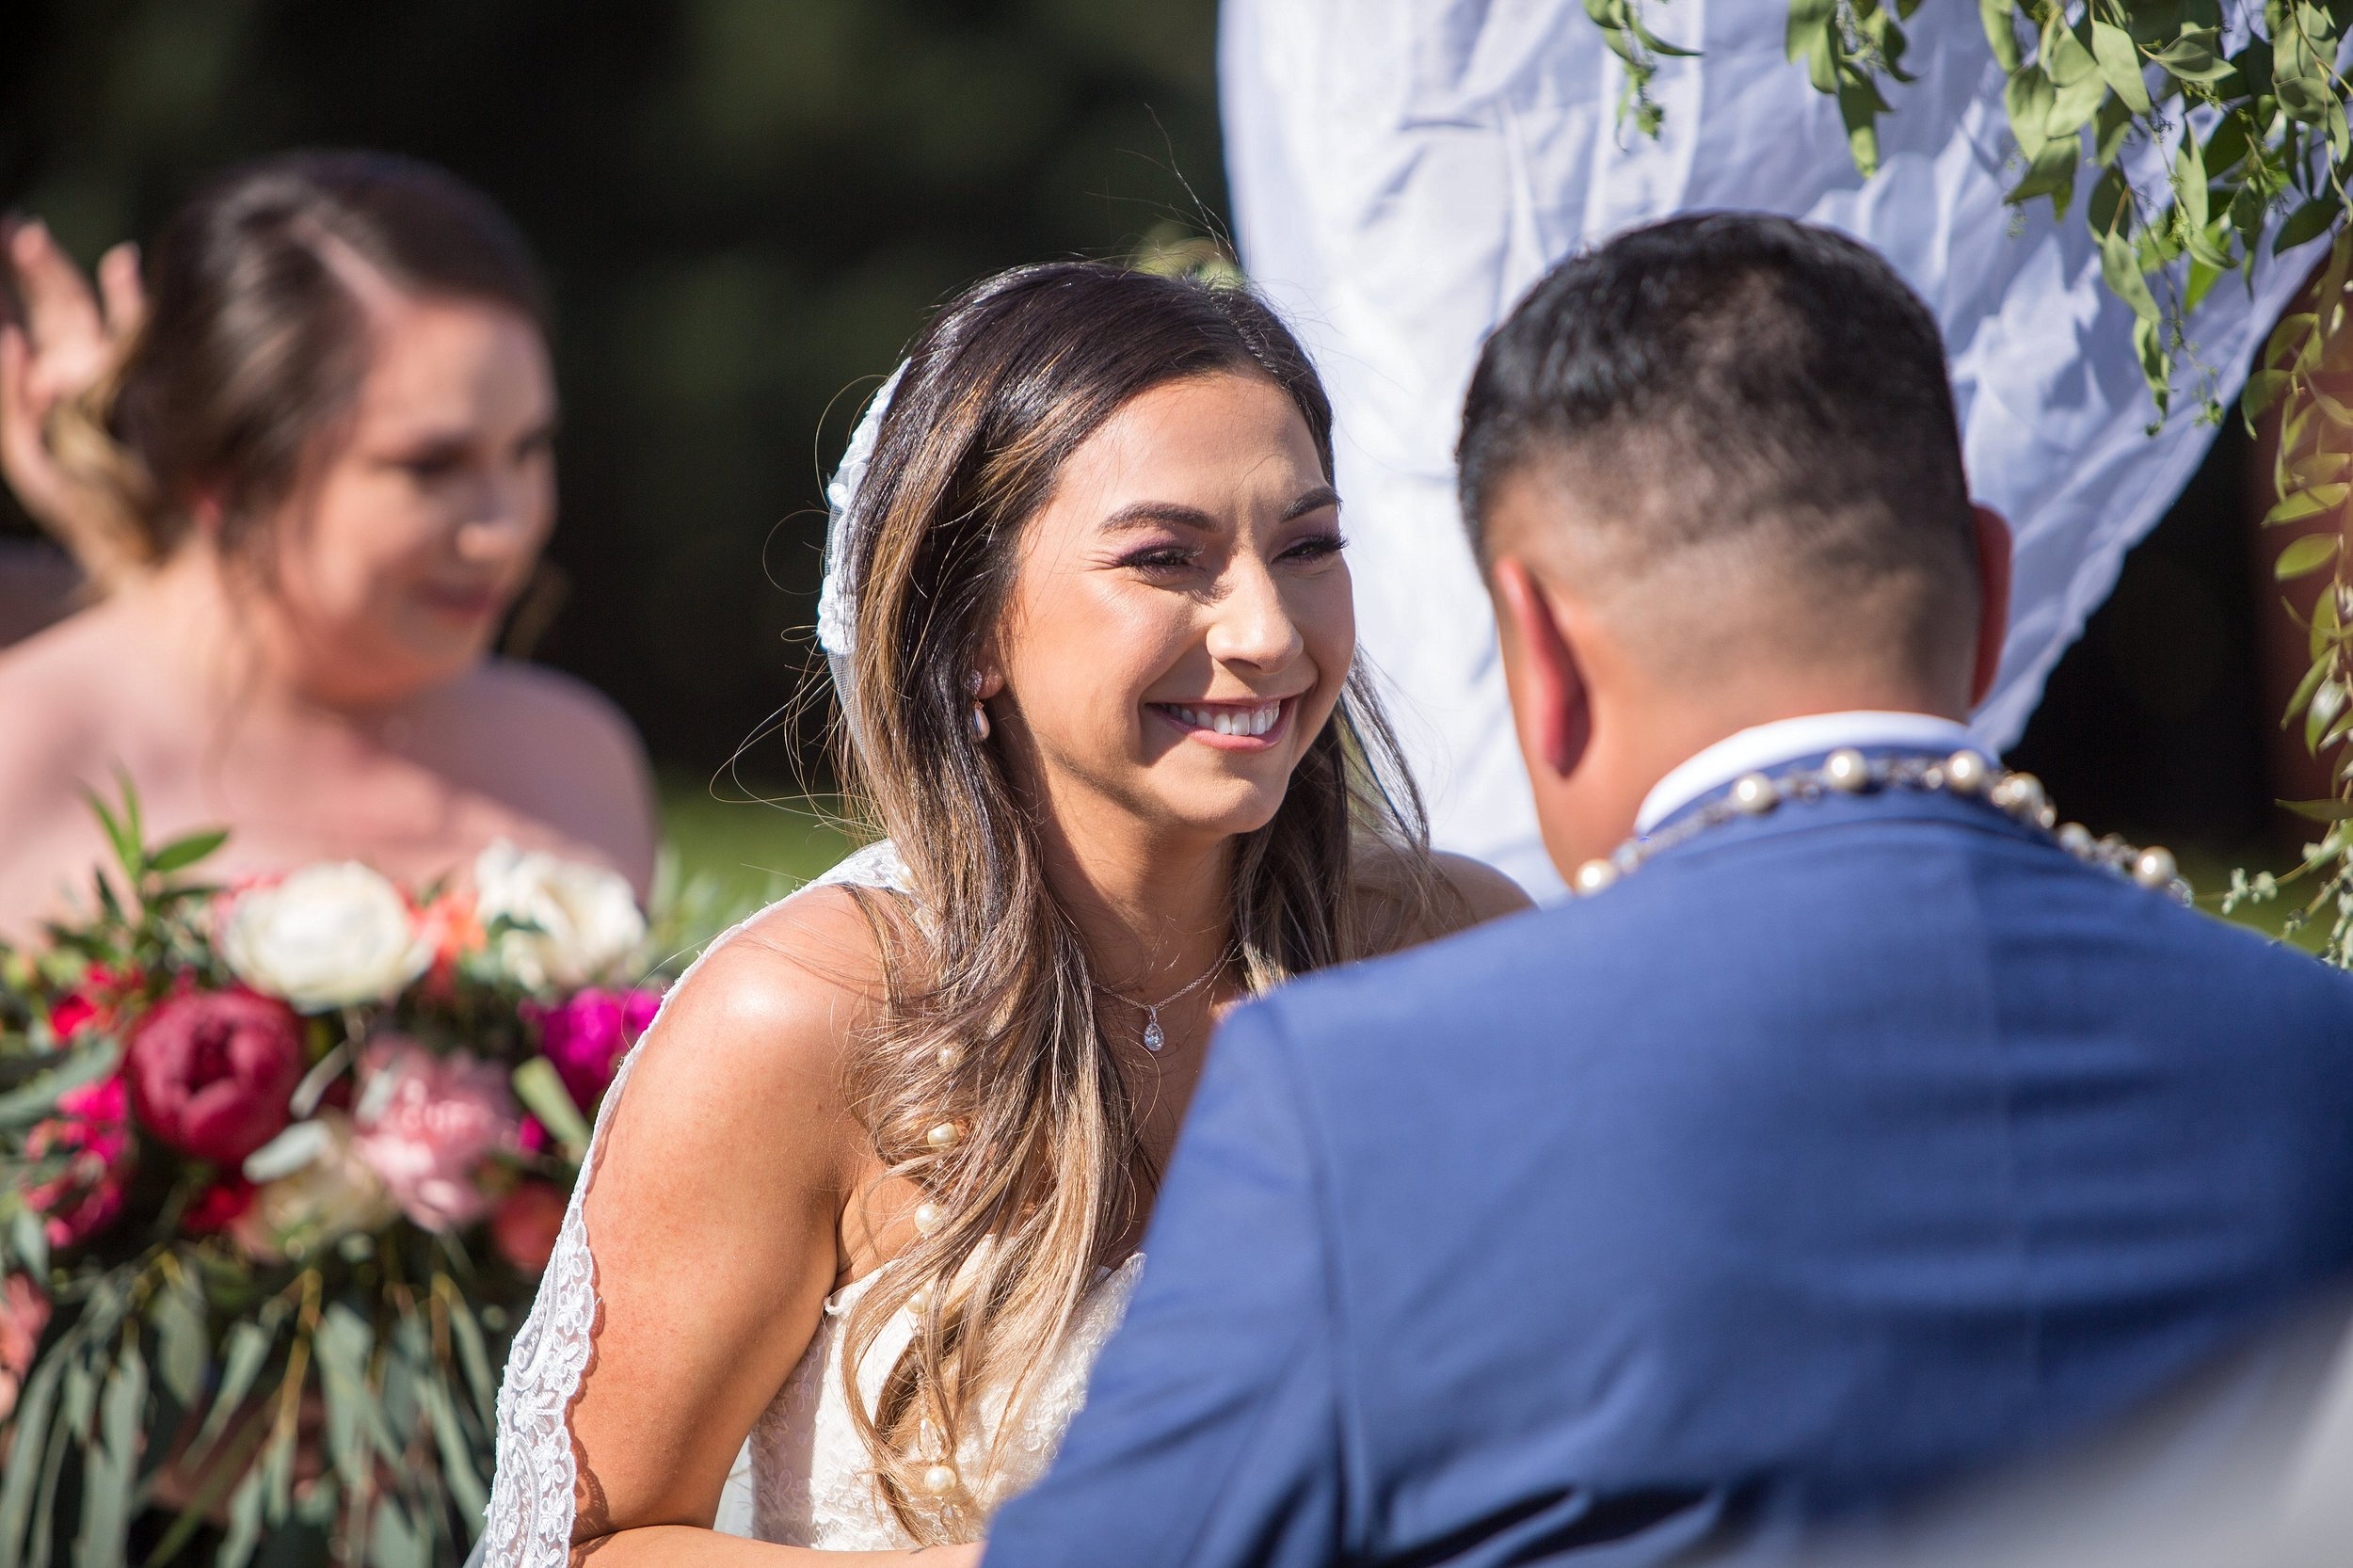 Salem_Oregon_Wedding_Photographer_008.jpg